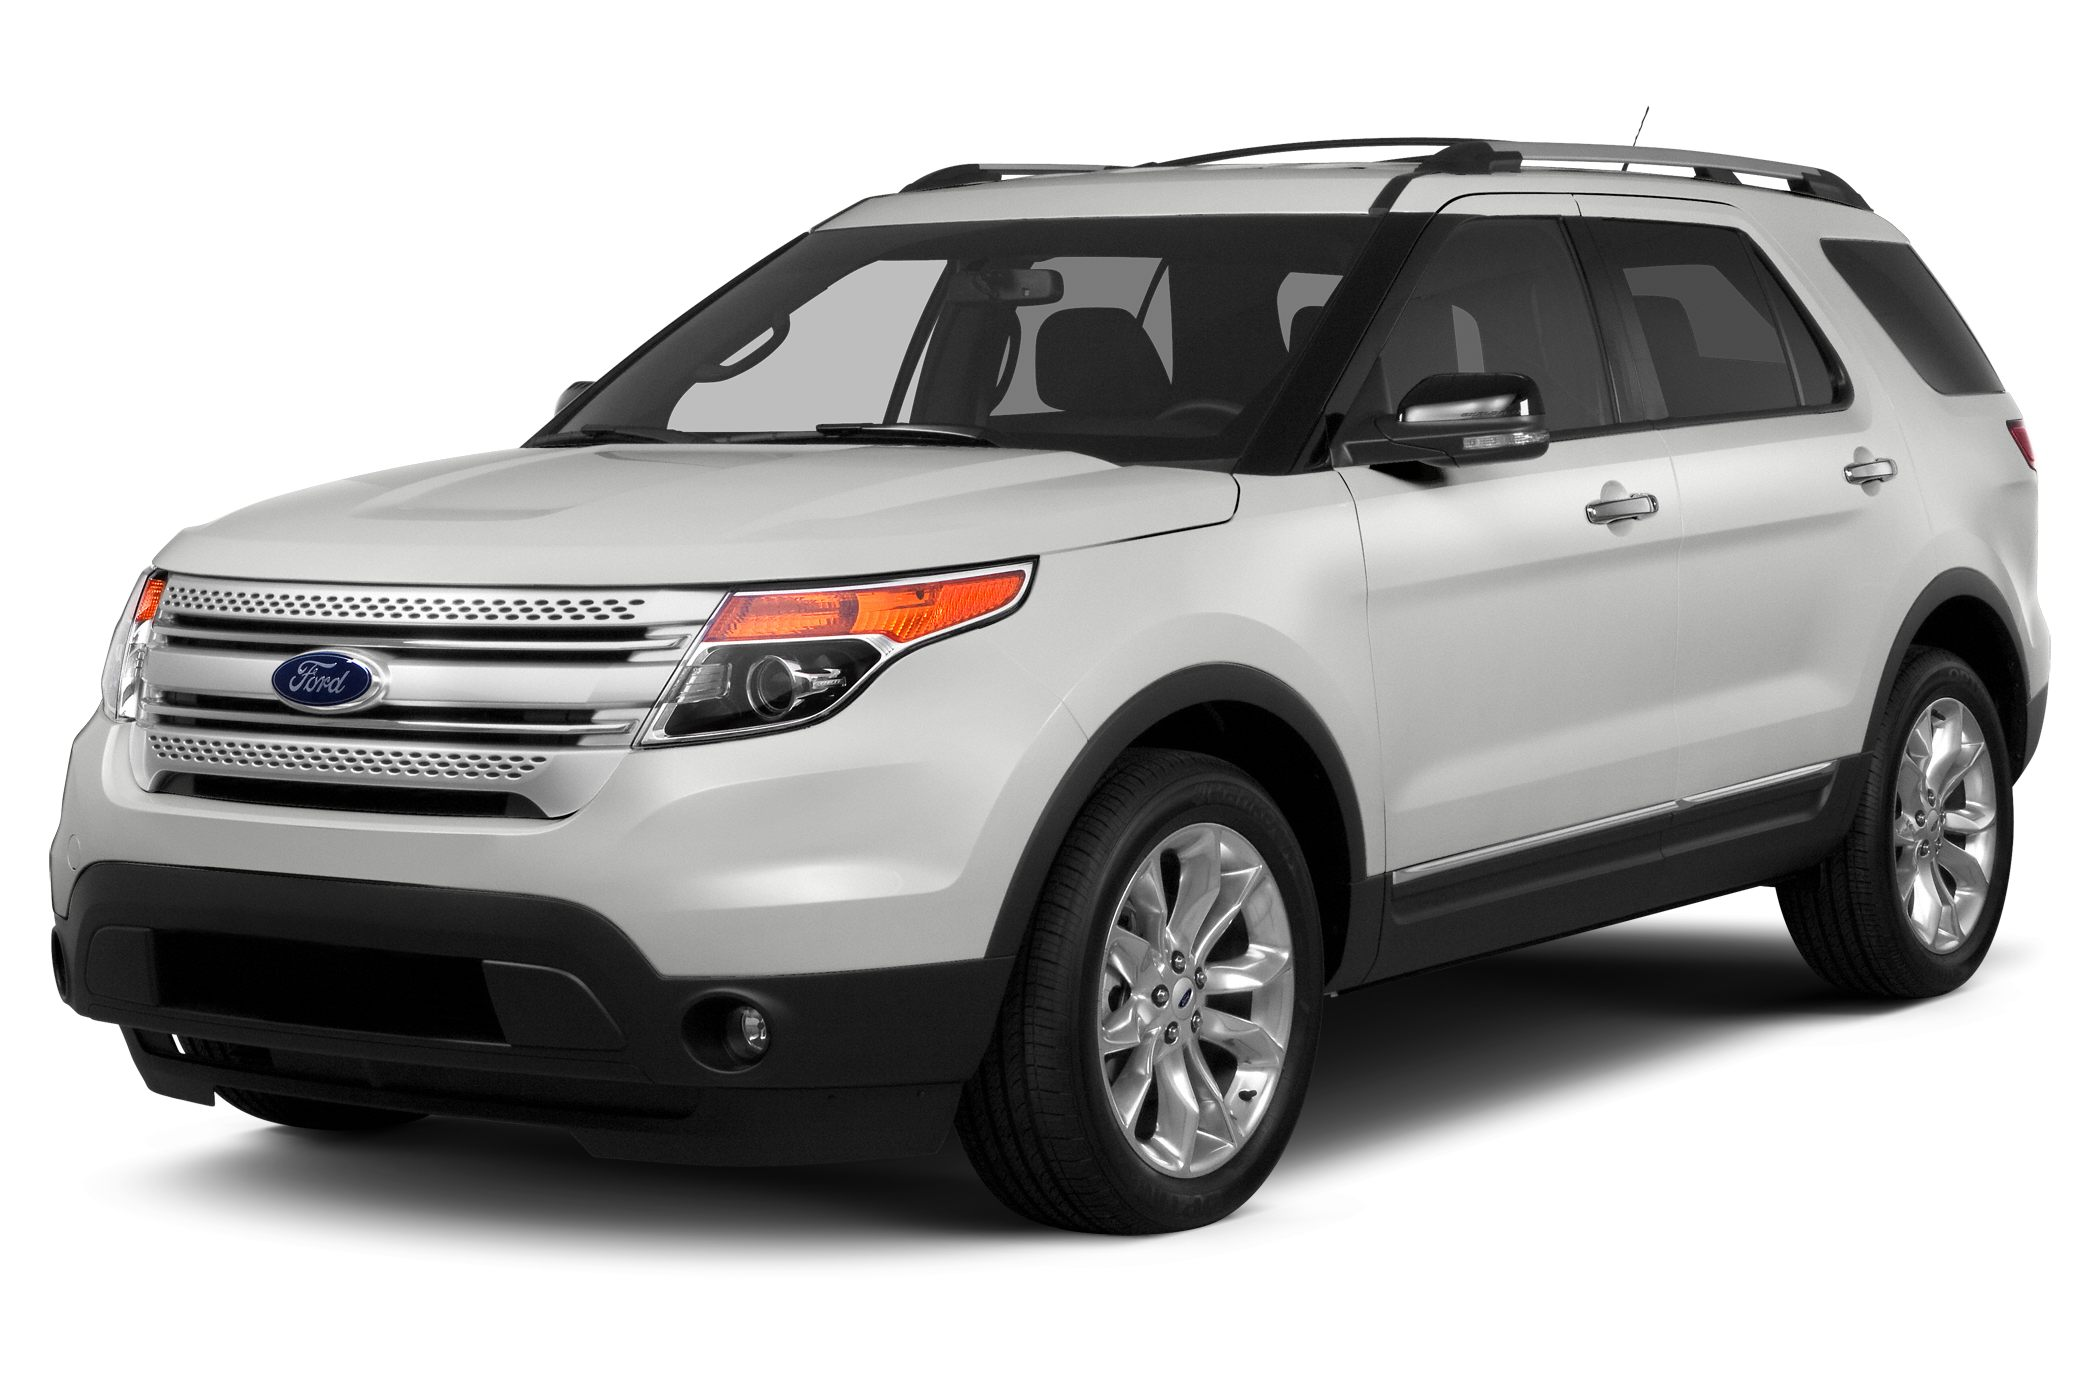 2015 Ford Explorer XLT SUV for sale in Bloomer for $39,130 with 0 miles